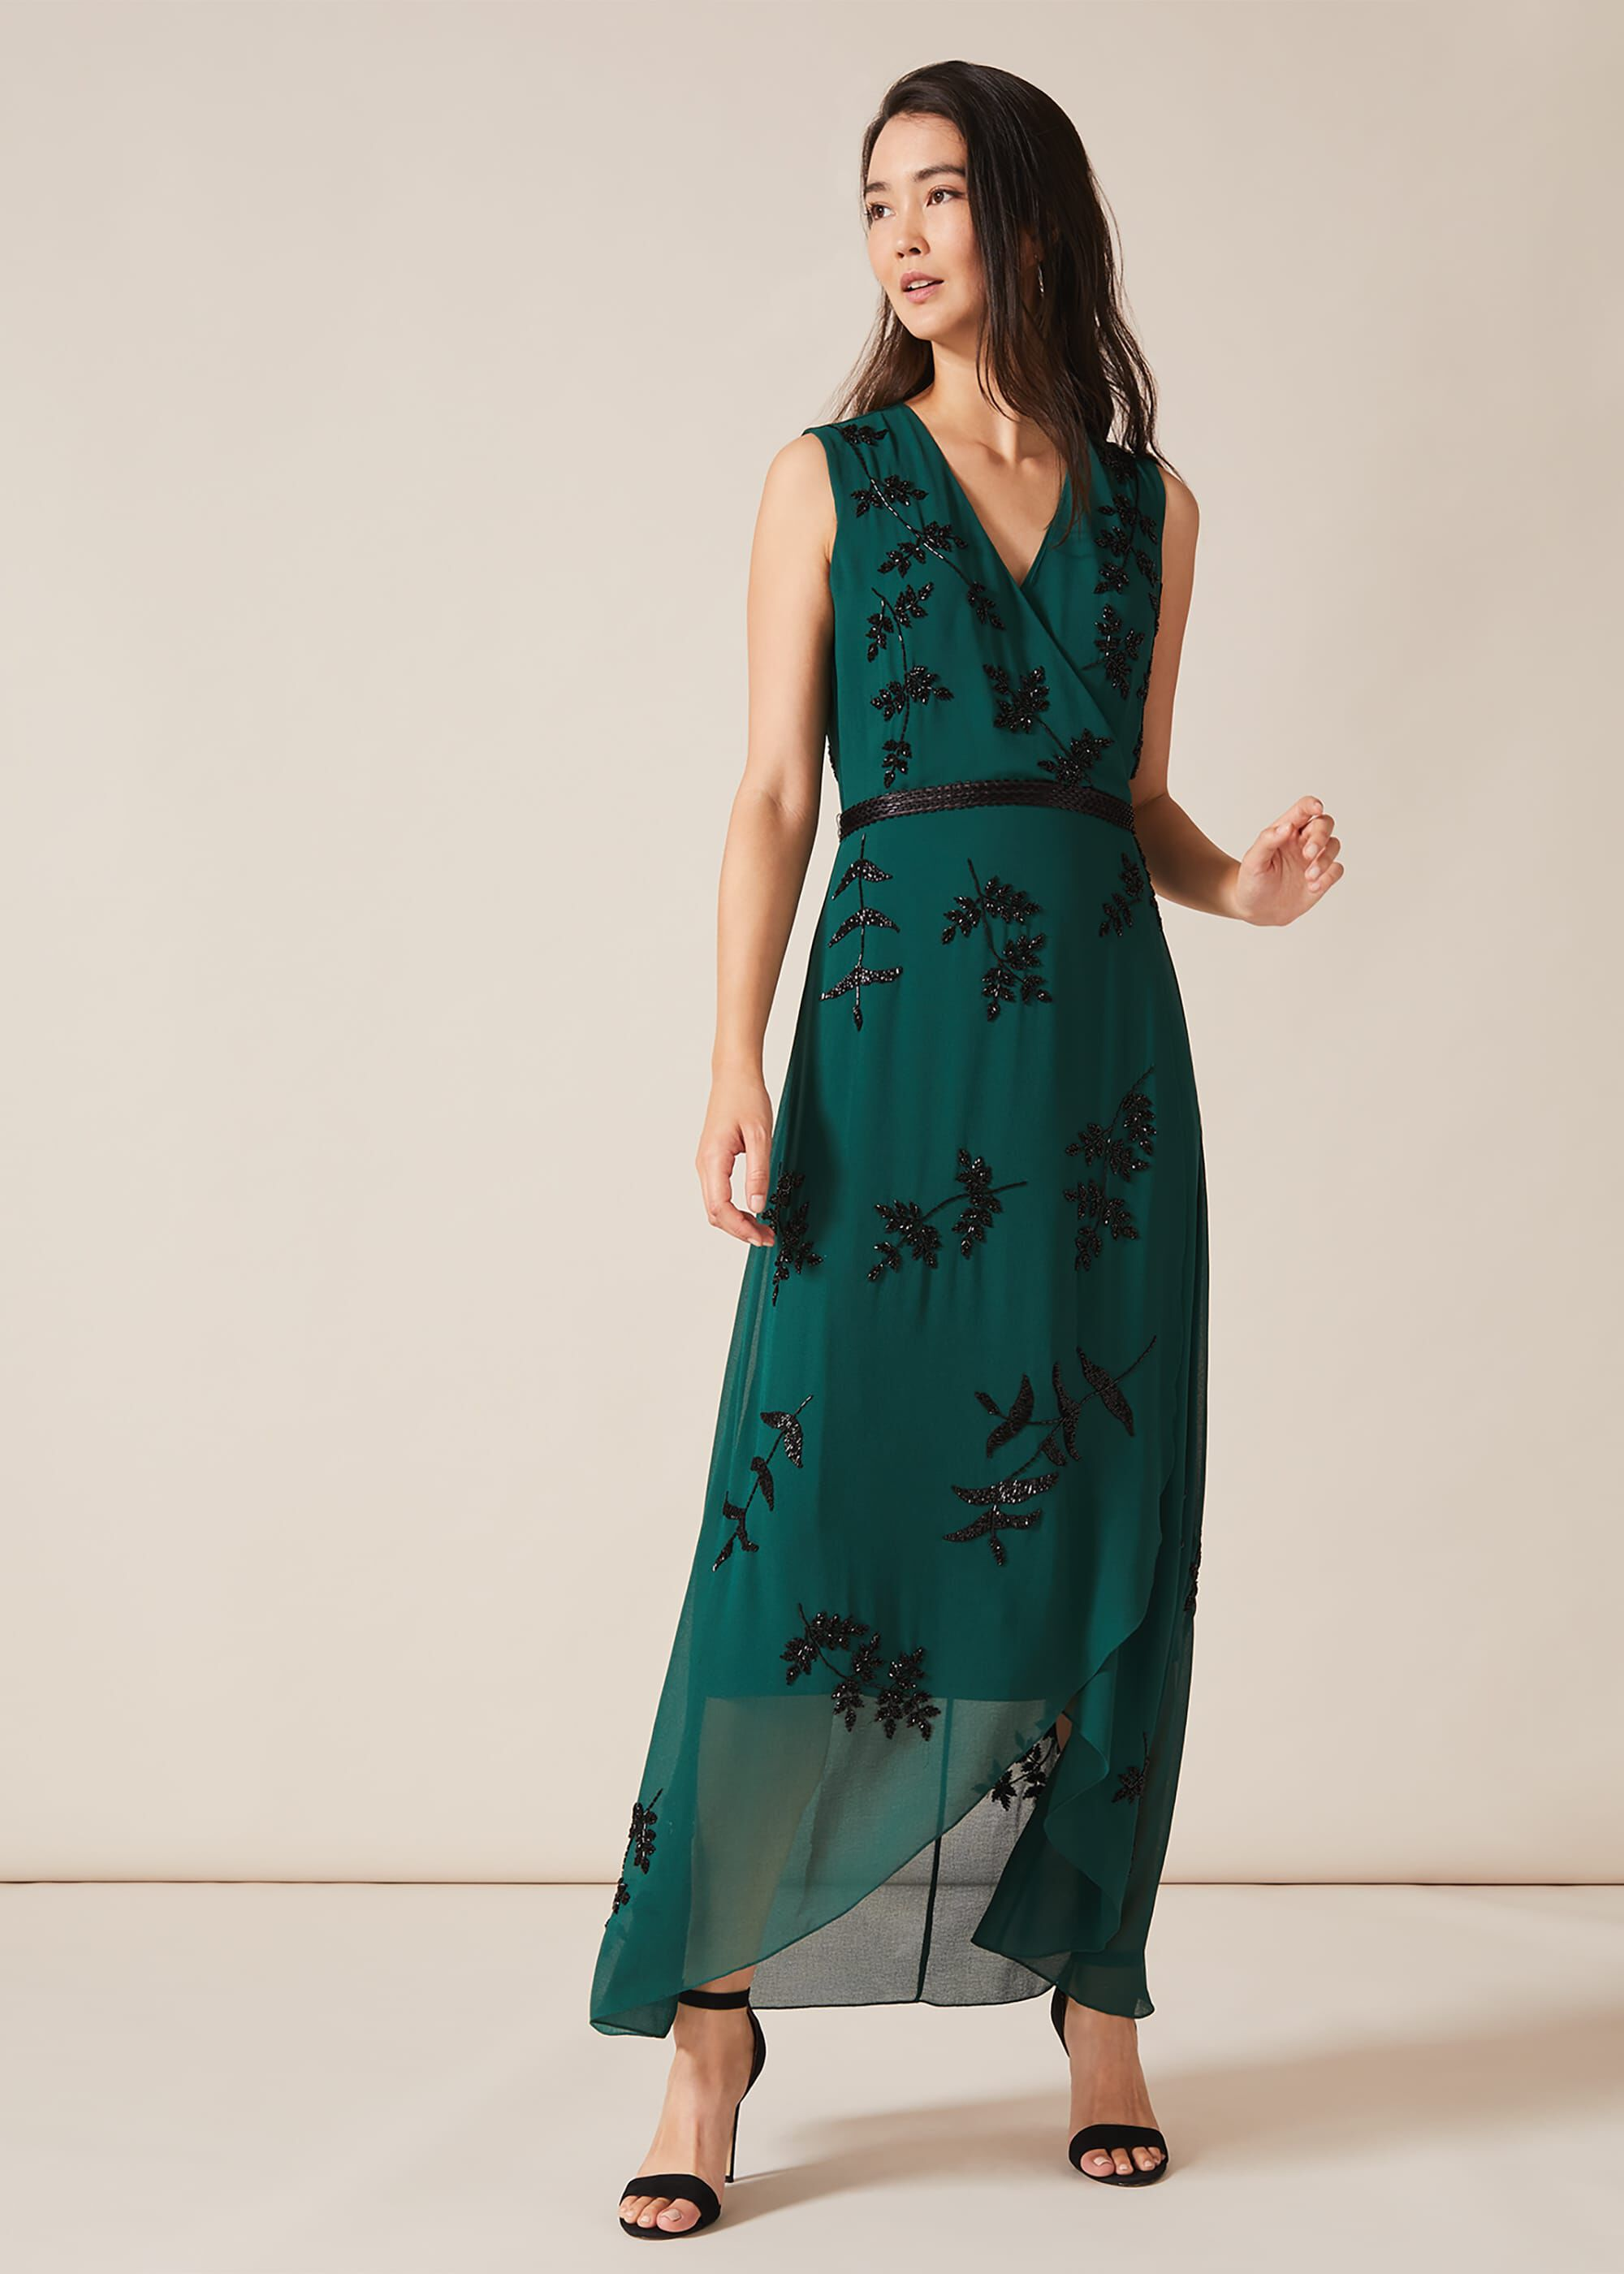 Phase Eight Serena Beaded Dress, Green, Maxi